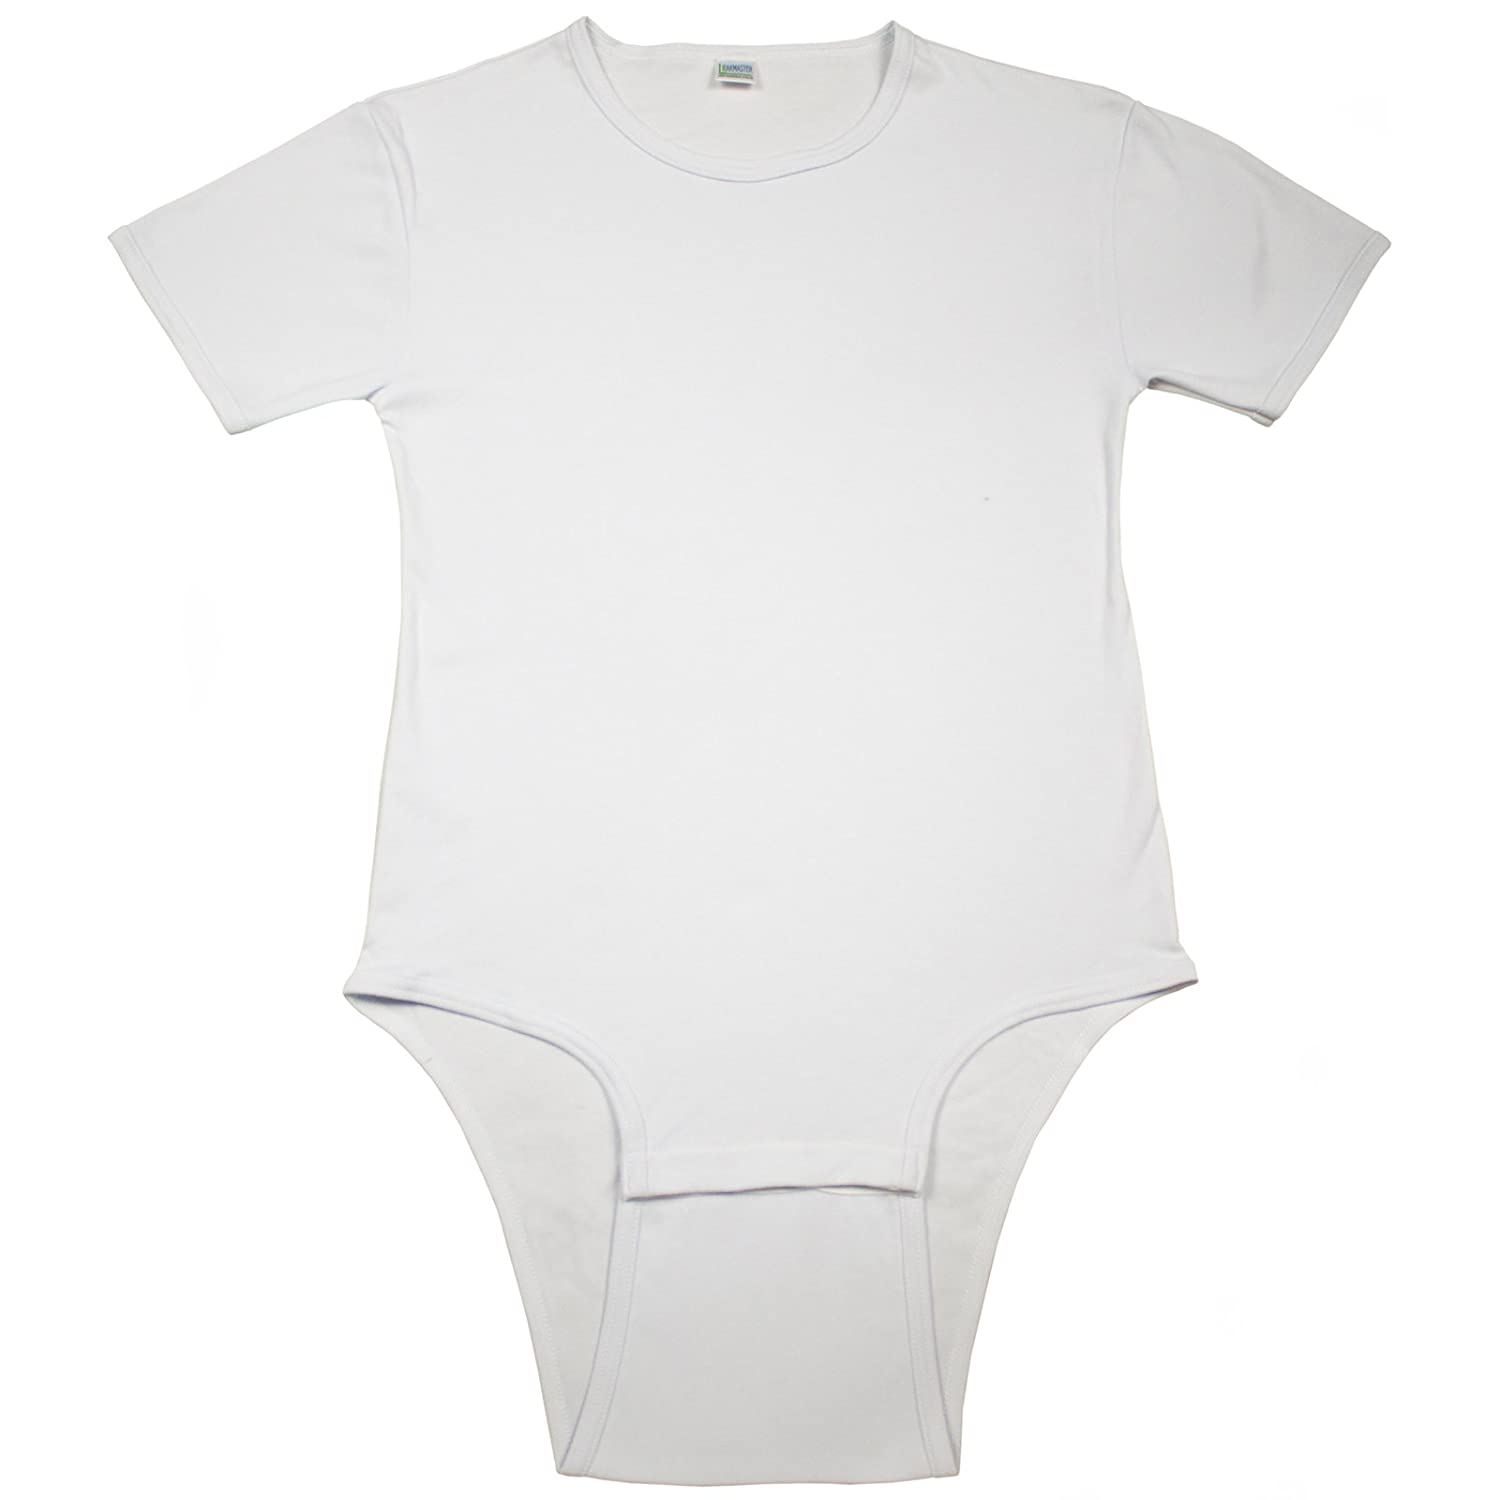 Amazon.com  Adult Bodysuit Diapering T-Shirt by Leakmaster e6187c85f